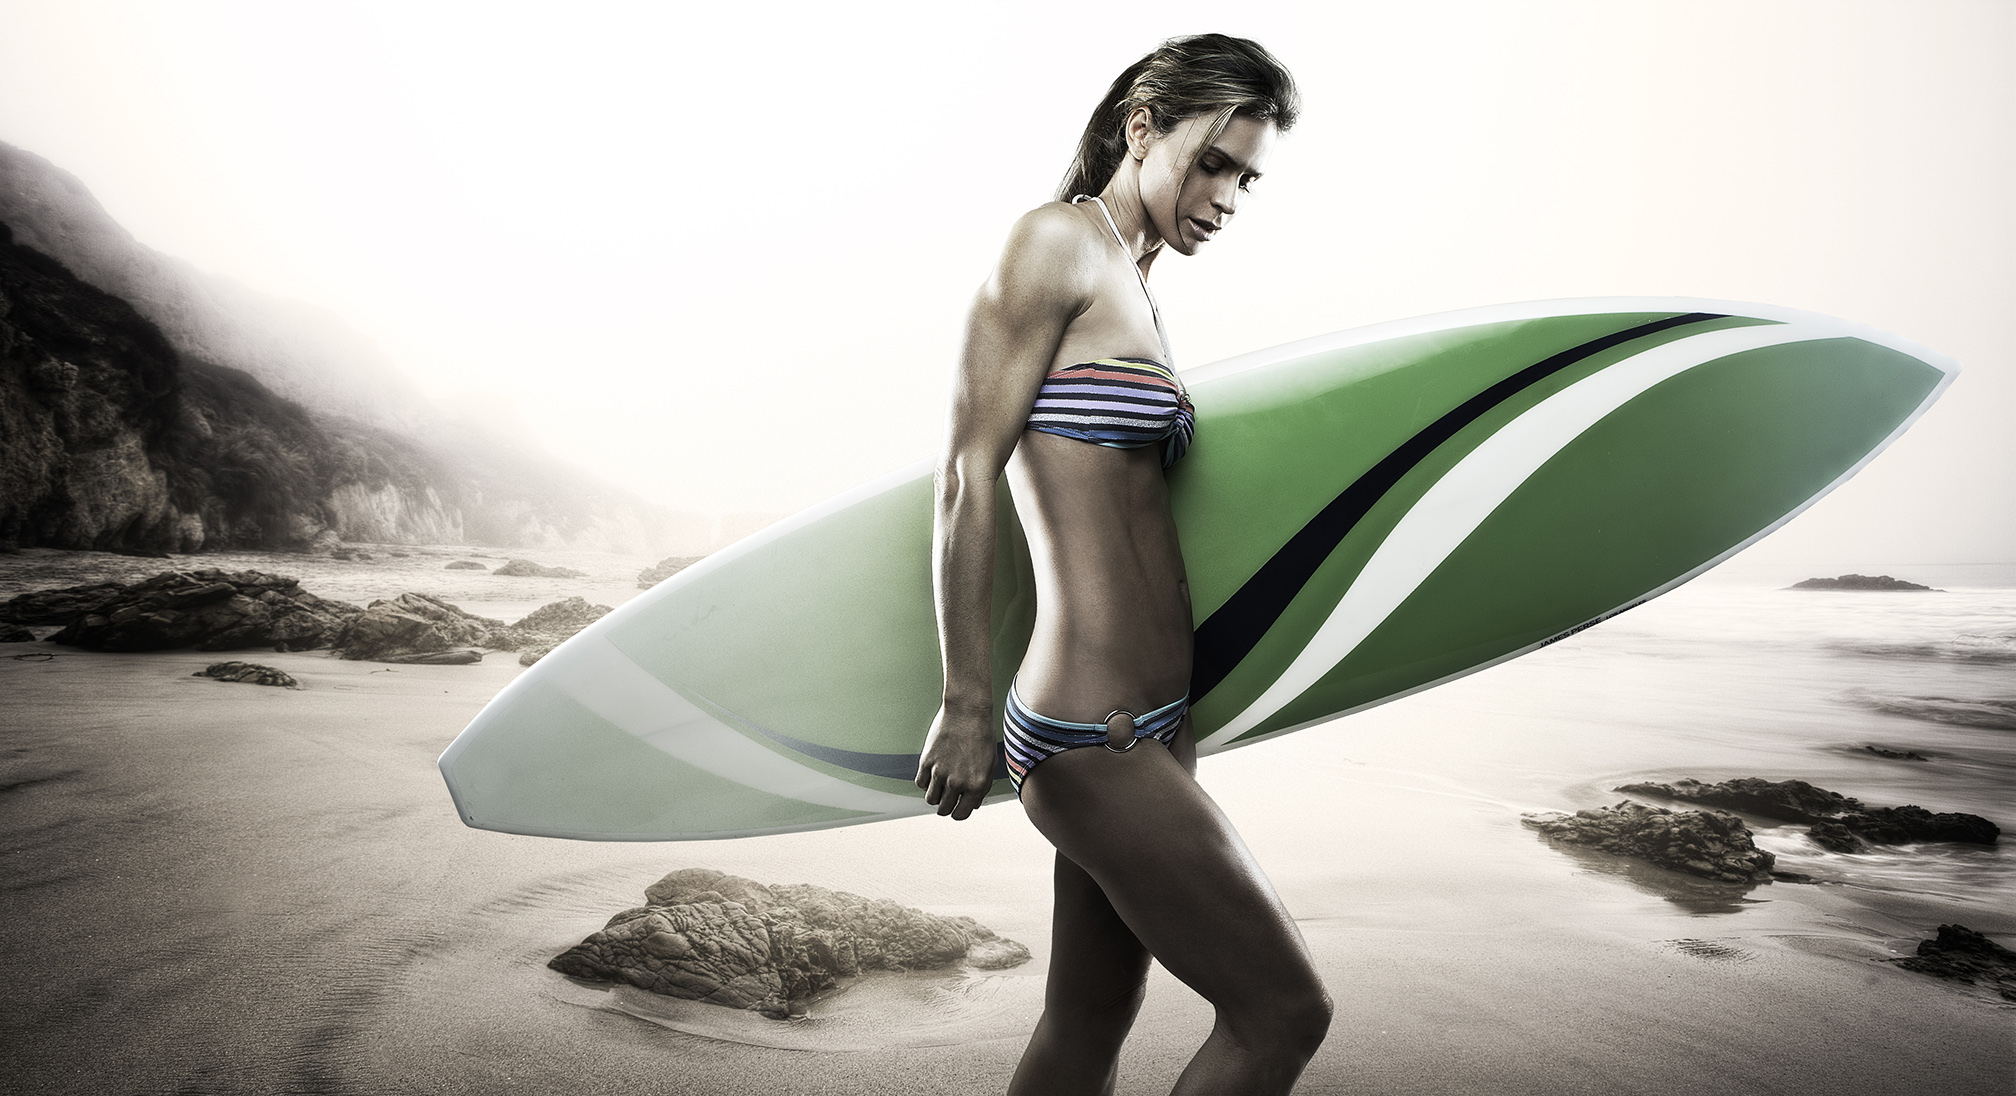 Woman on beach with surfboard | Dovis Bird Agency Photography